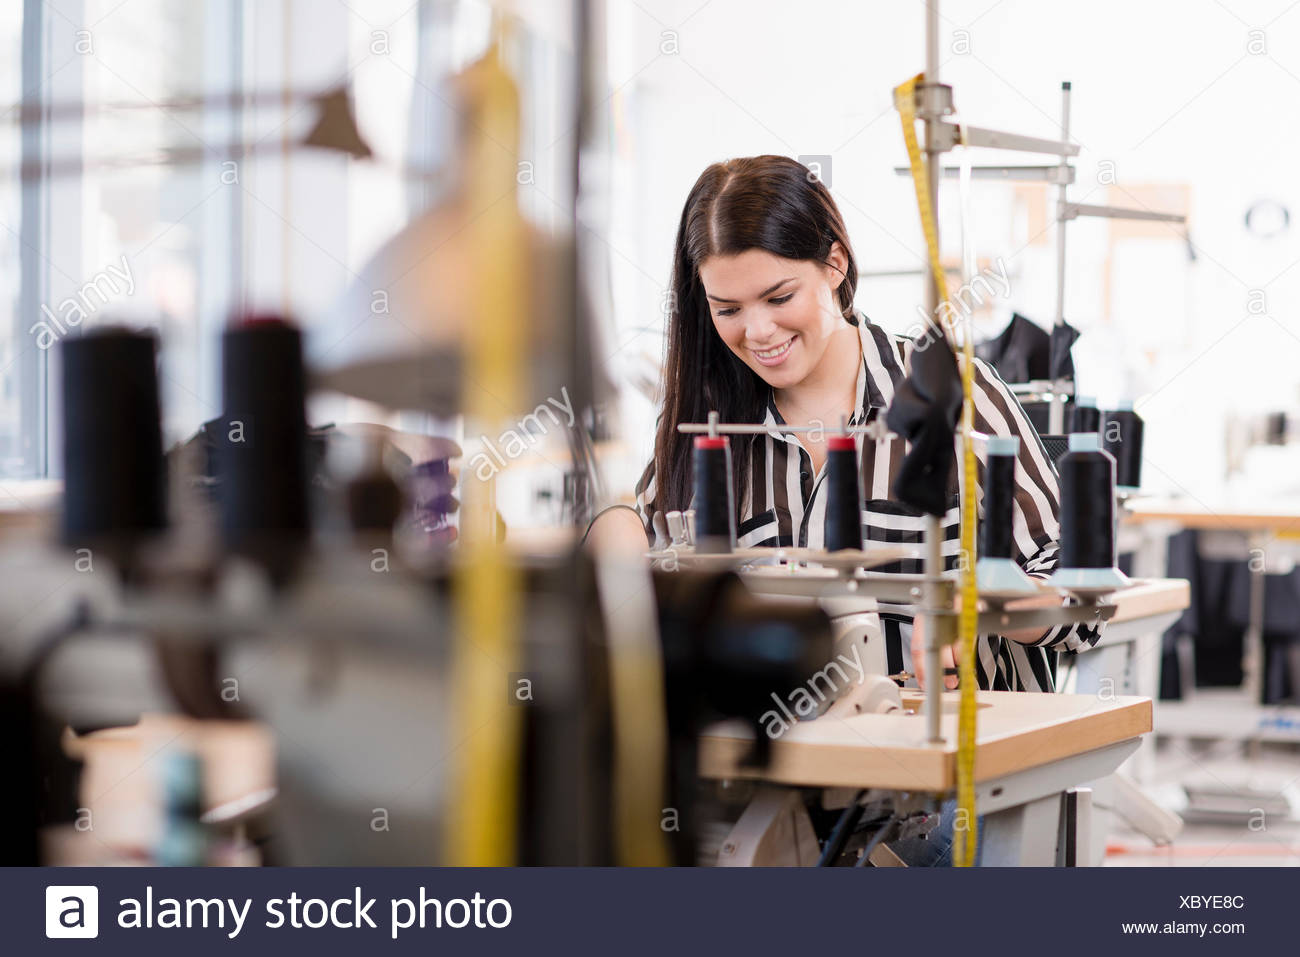 Young female seamstress using sewing machine in workshop - Stock Image